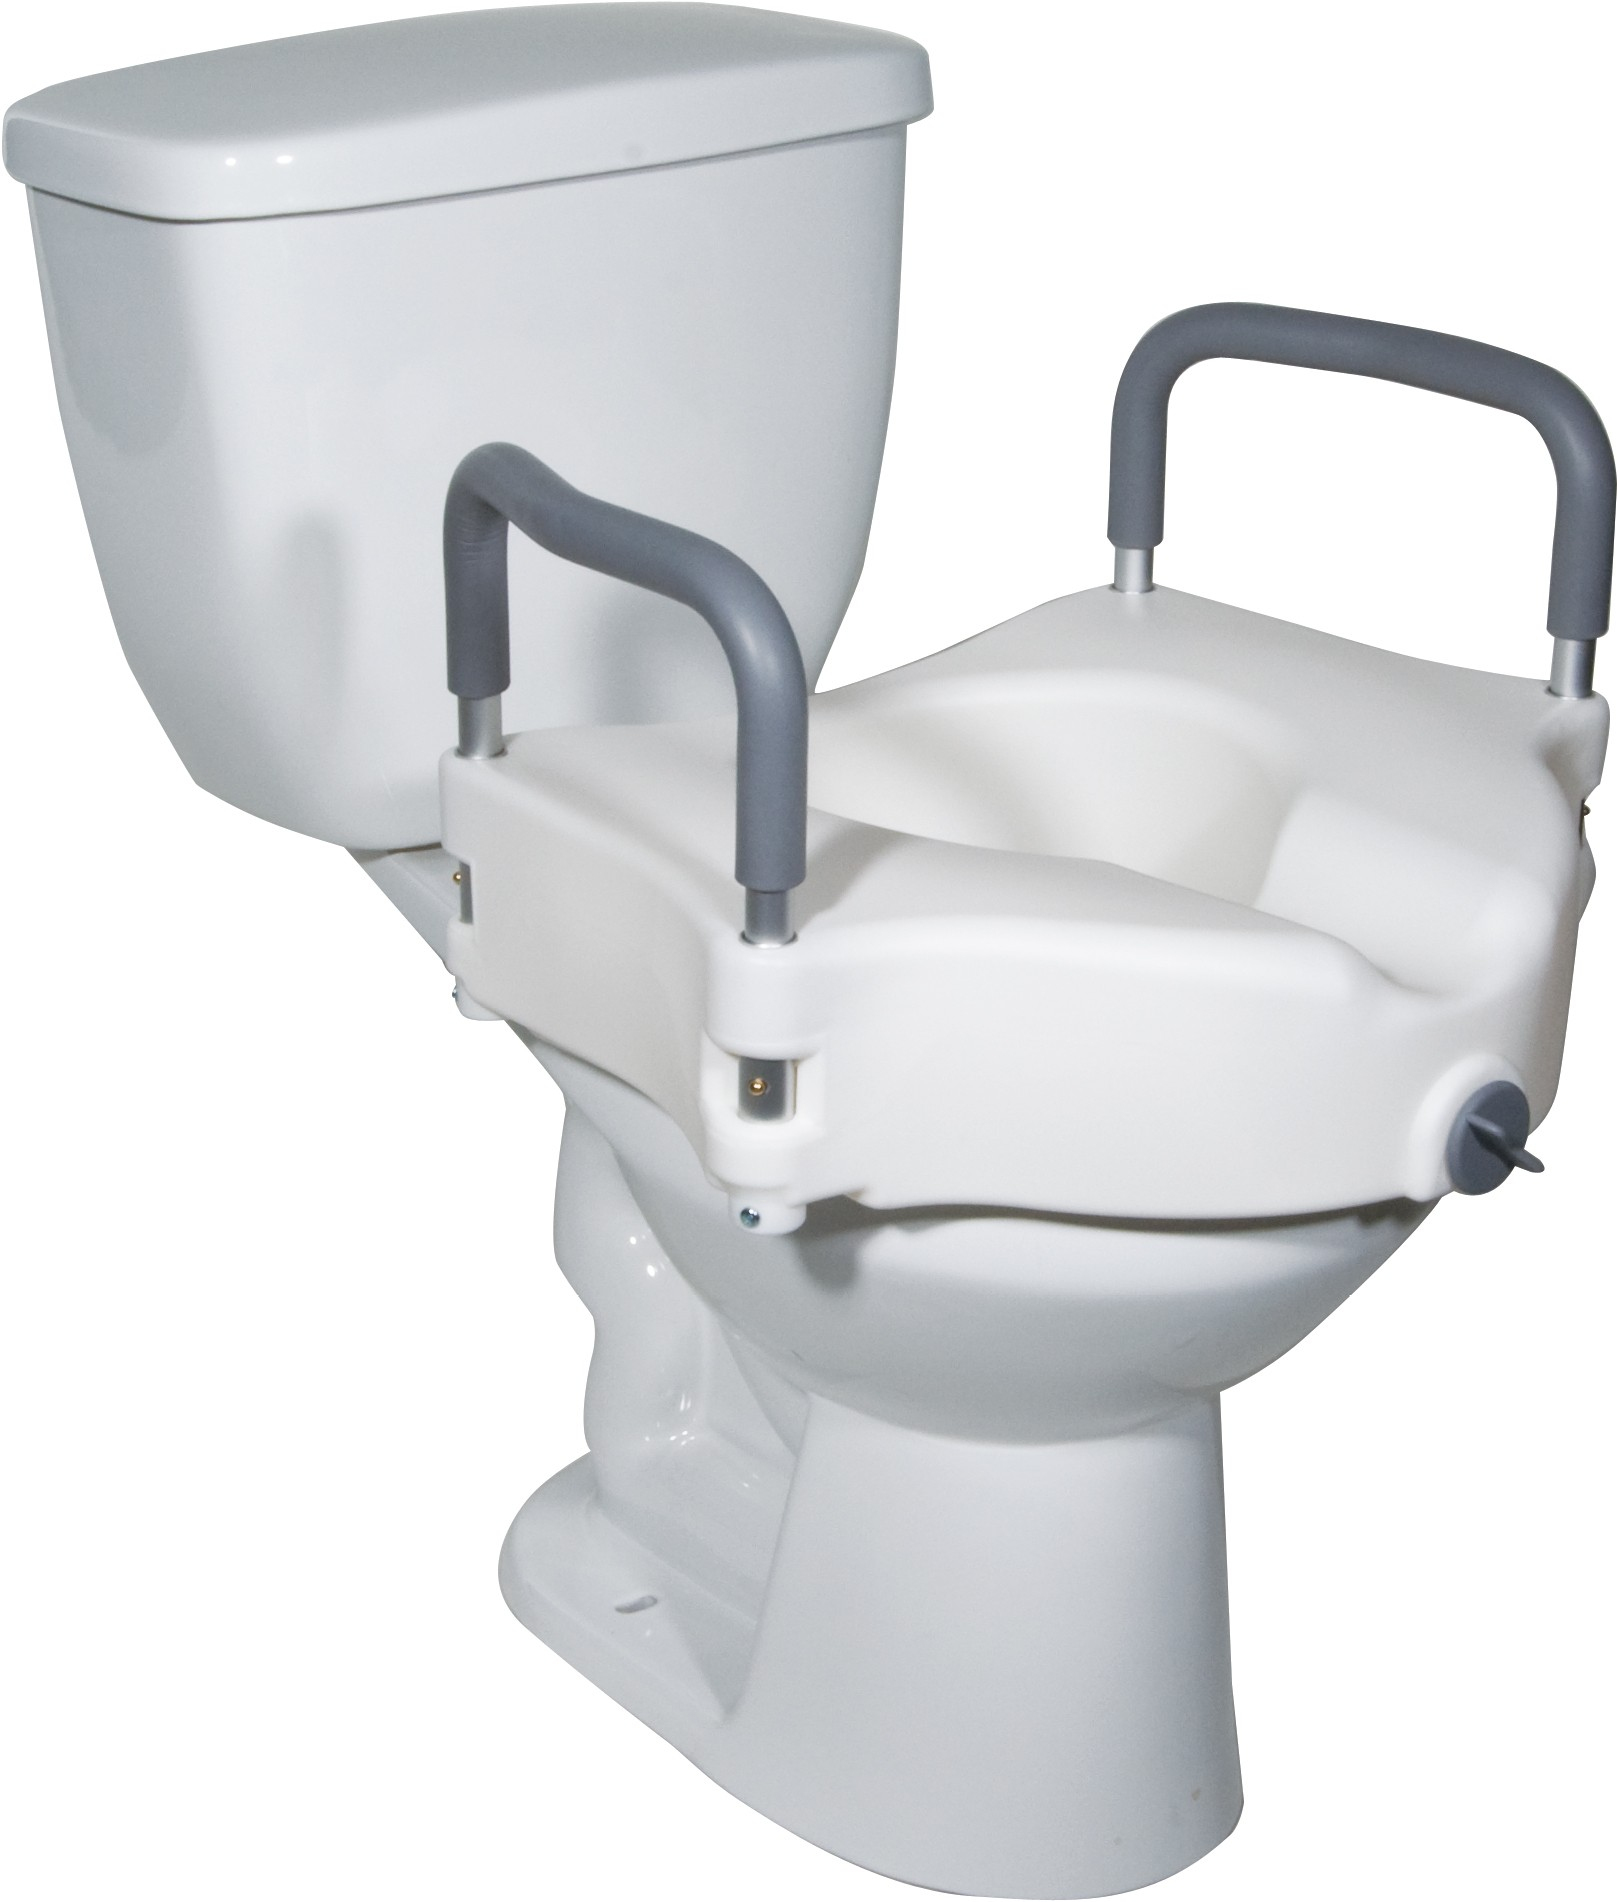 Locking Elevated Toilet Seat with Arms - FREE Shipping